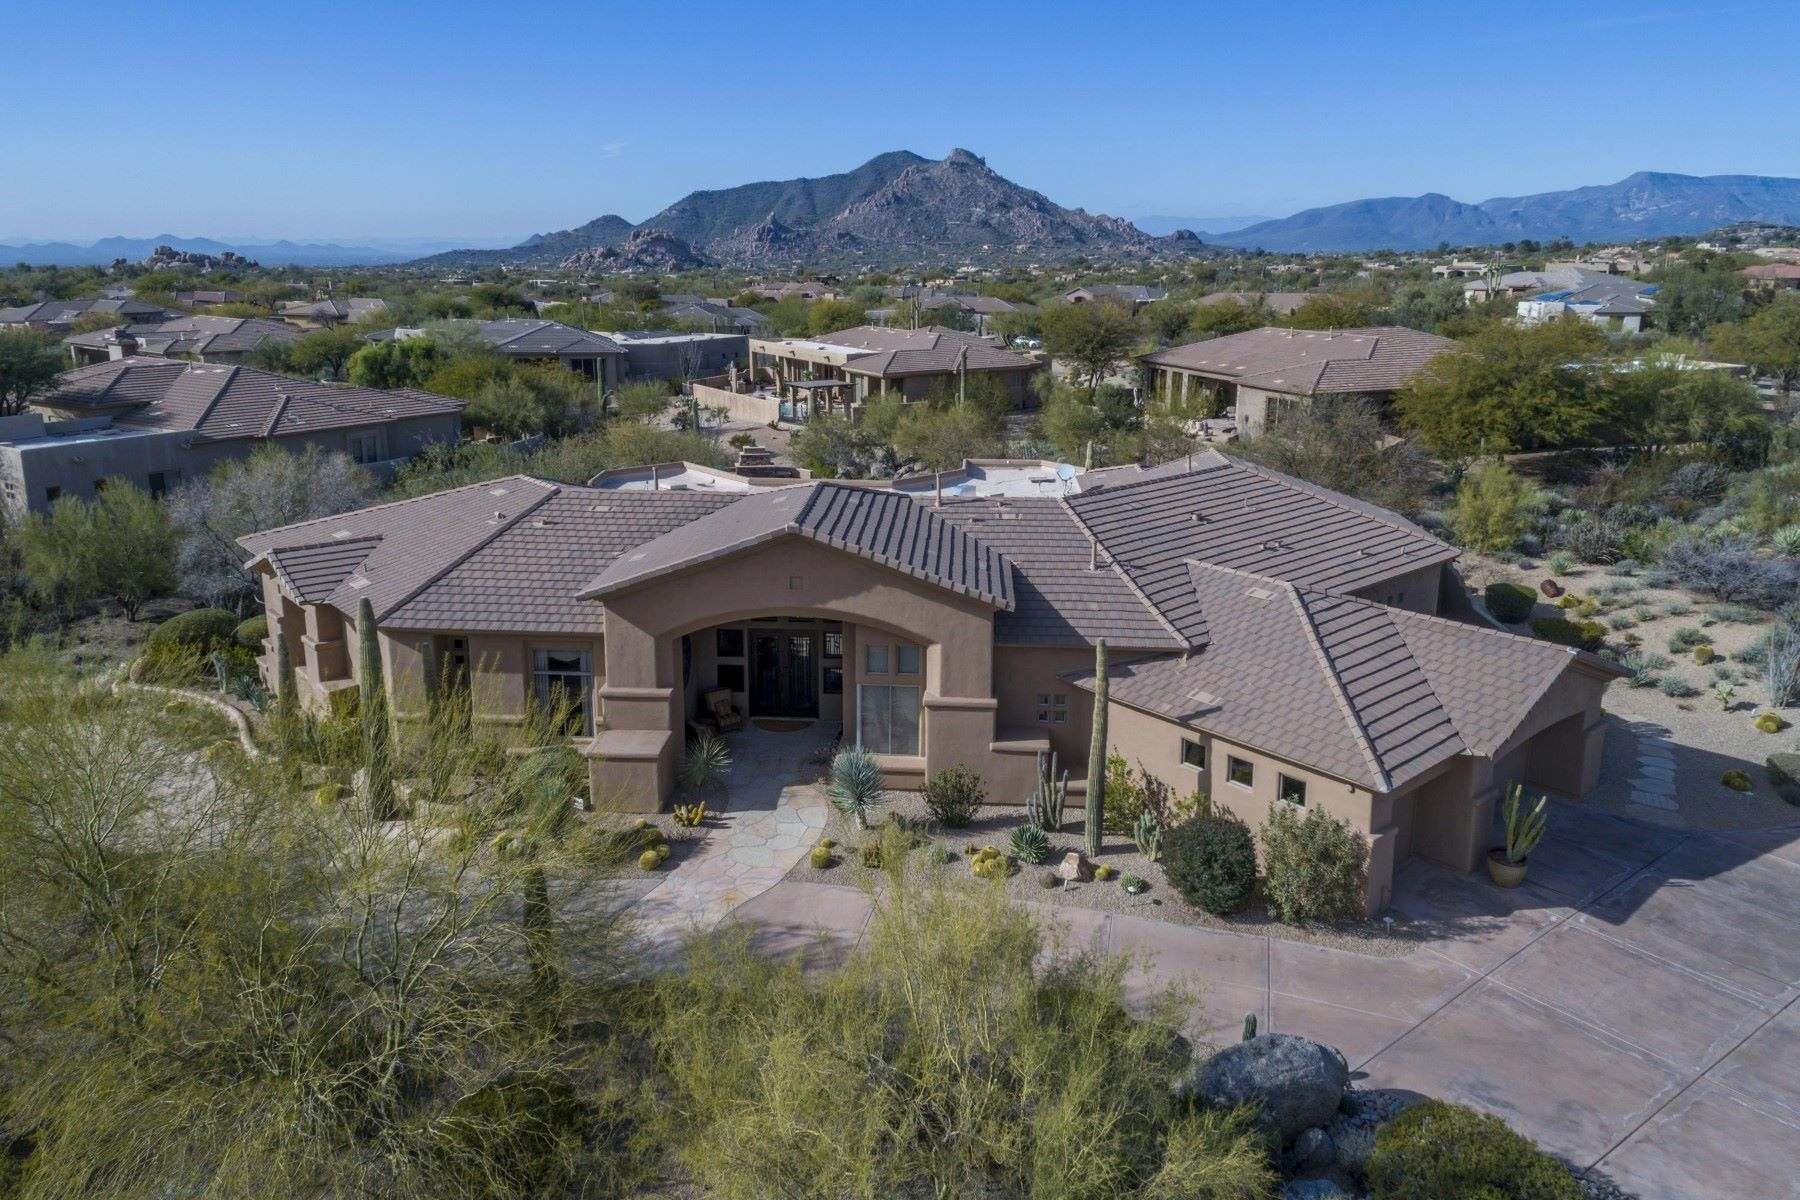 Single Family Home for Sale at Private Retreat and Entertainer's Delight in the beautiful community of Verdante 8172 E Thorntree Dr Scottsdale, Arizona, 85266 United States